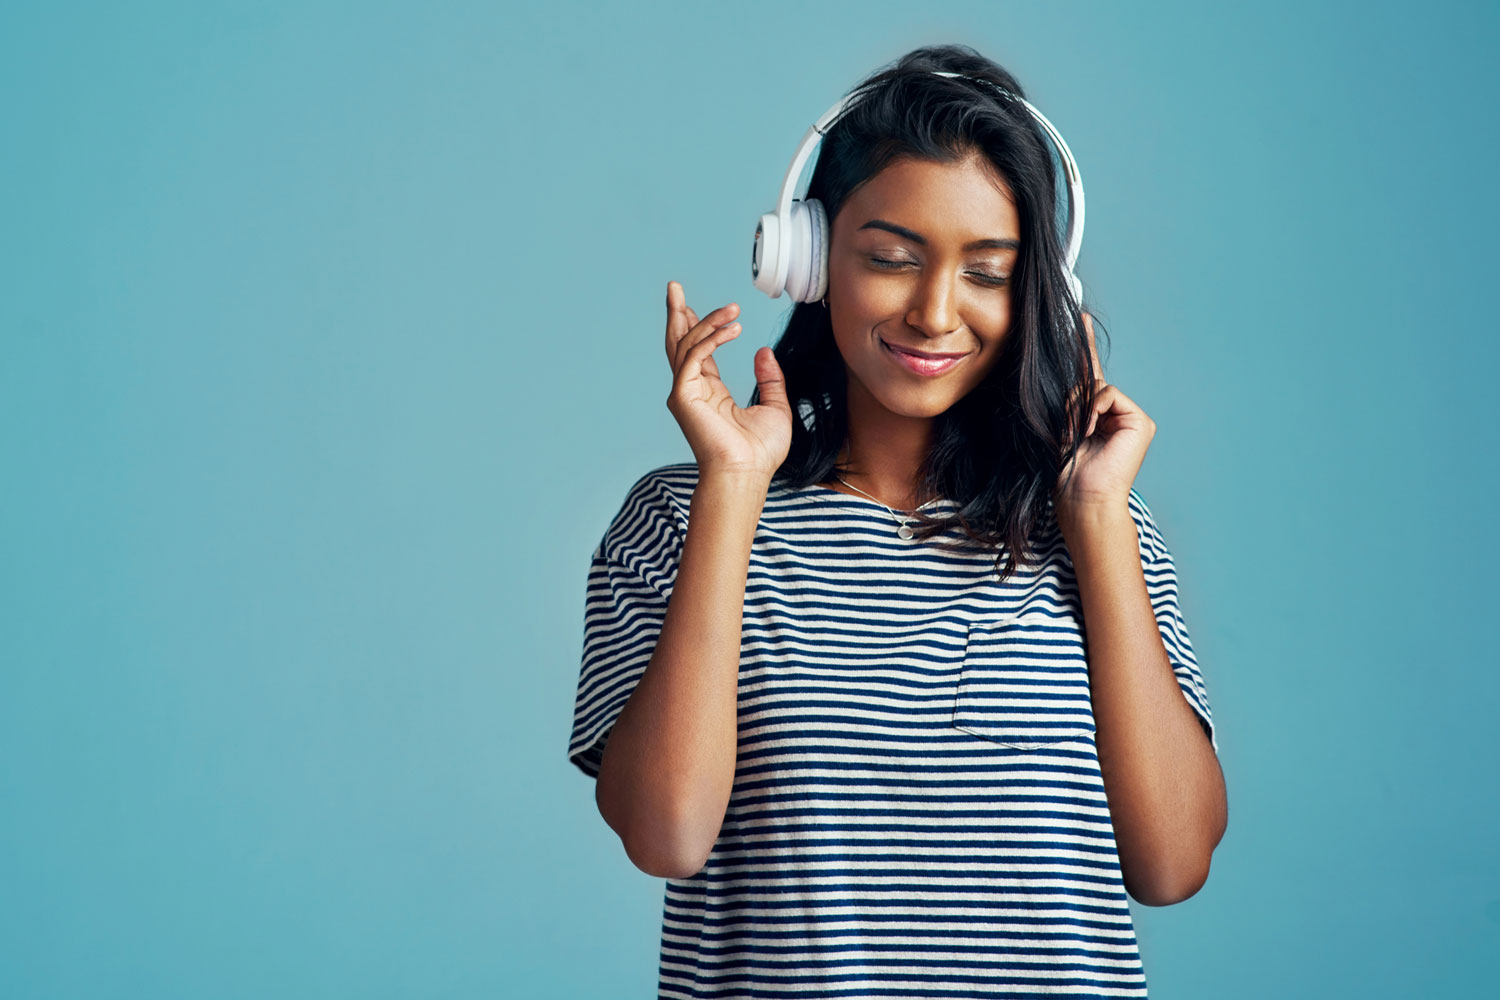 4 Tactics For Getting On Playlists